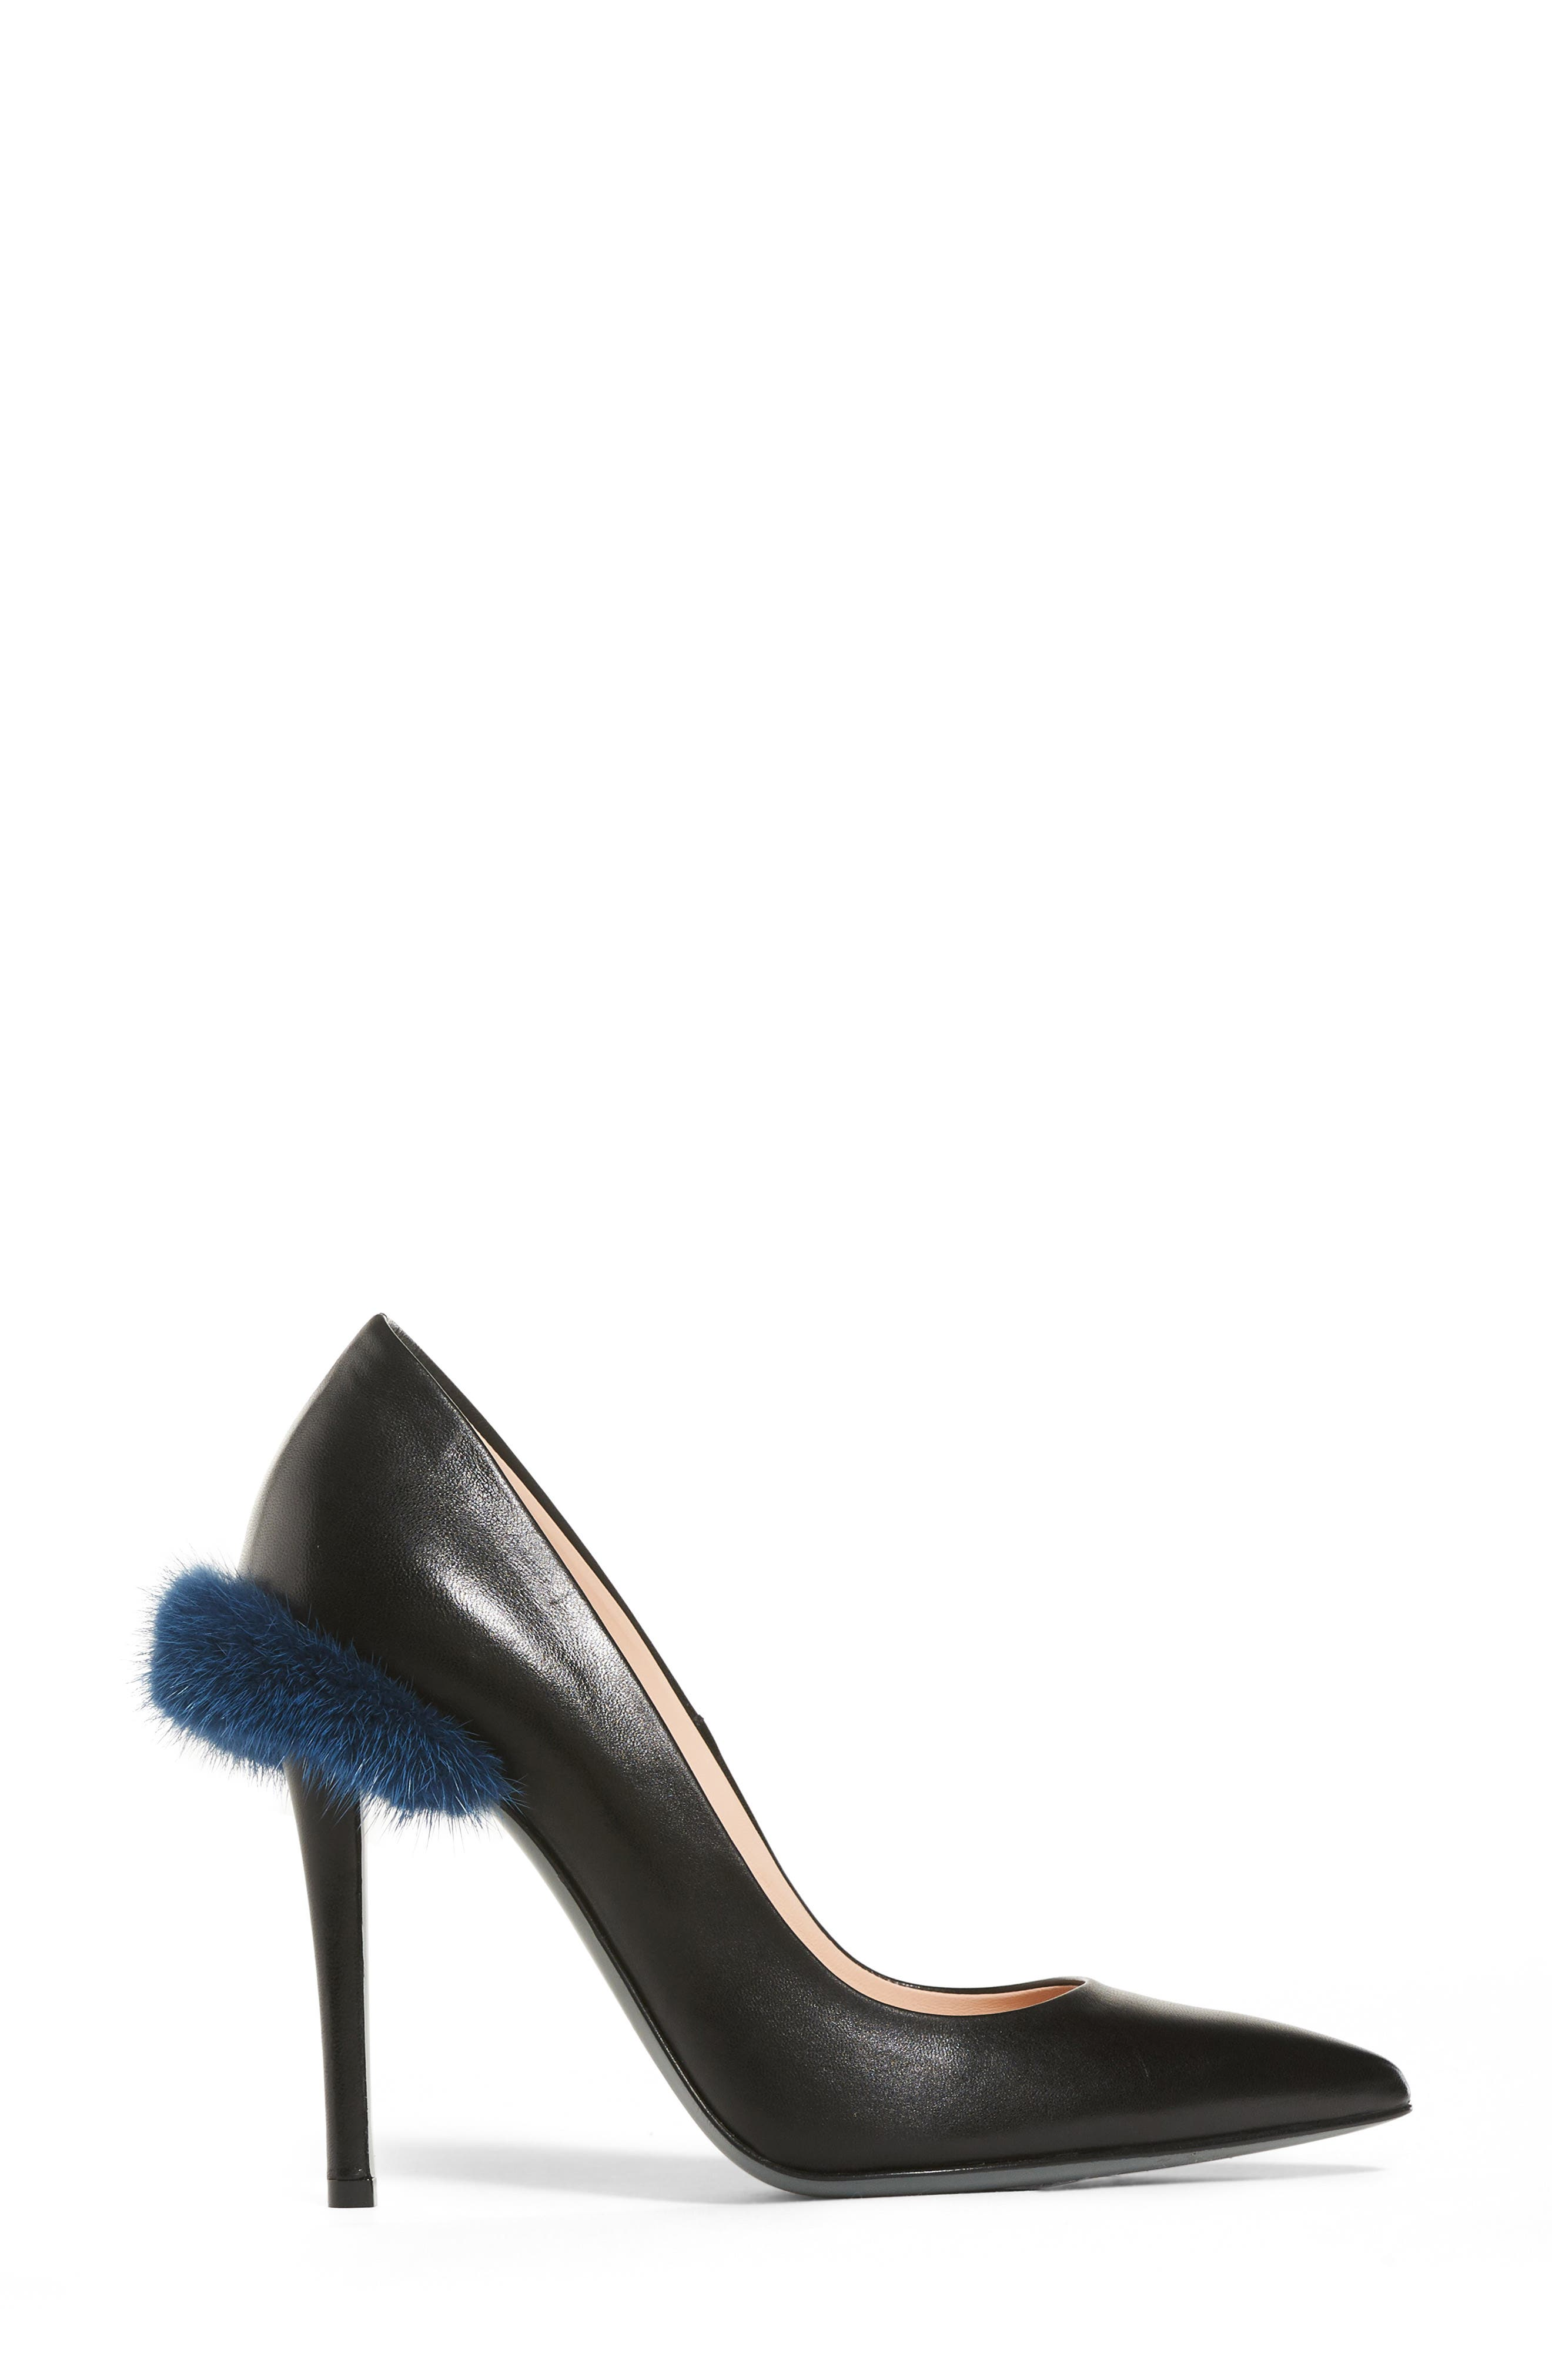 Duo Pointy Toe Pump with Genuine Mink Trim,                             Alternate thumbnail 3, color,                             009